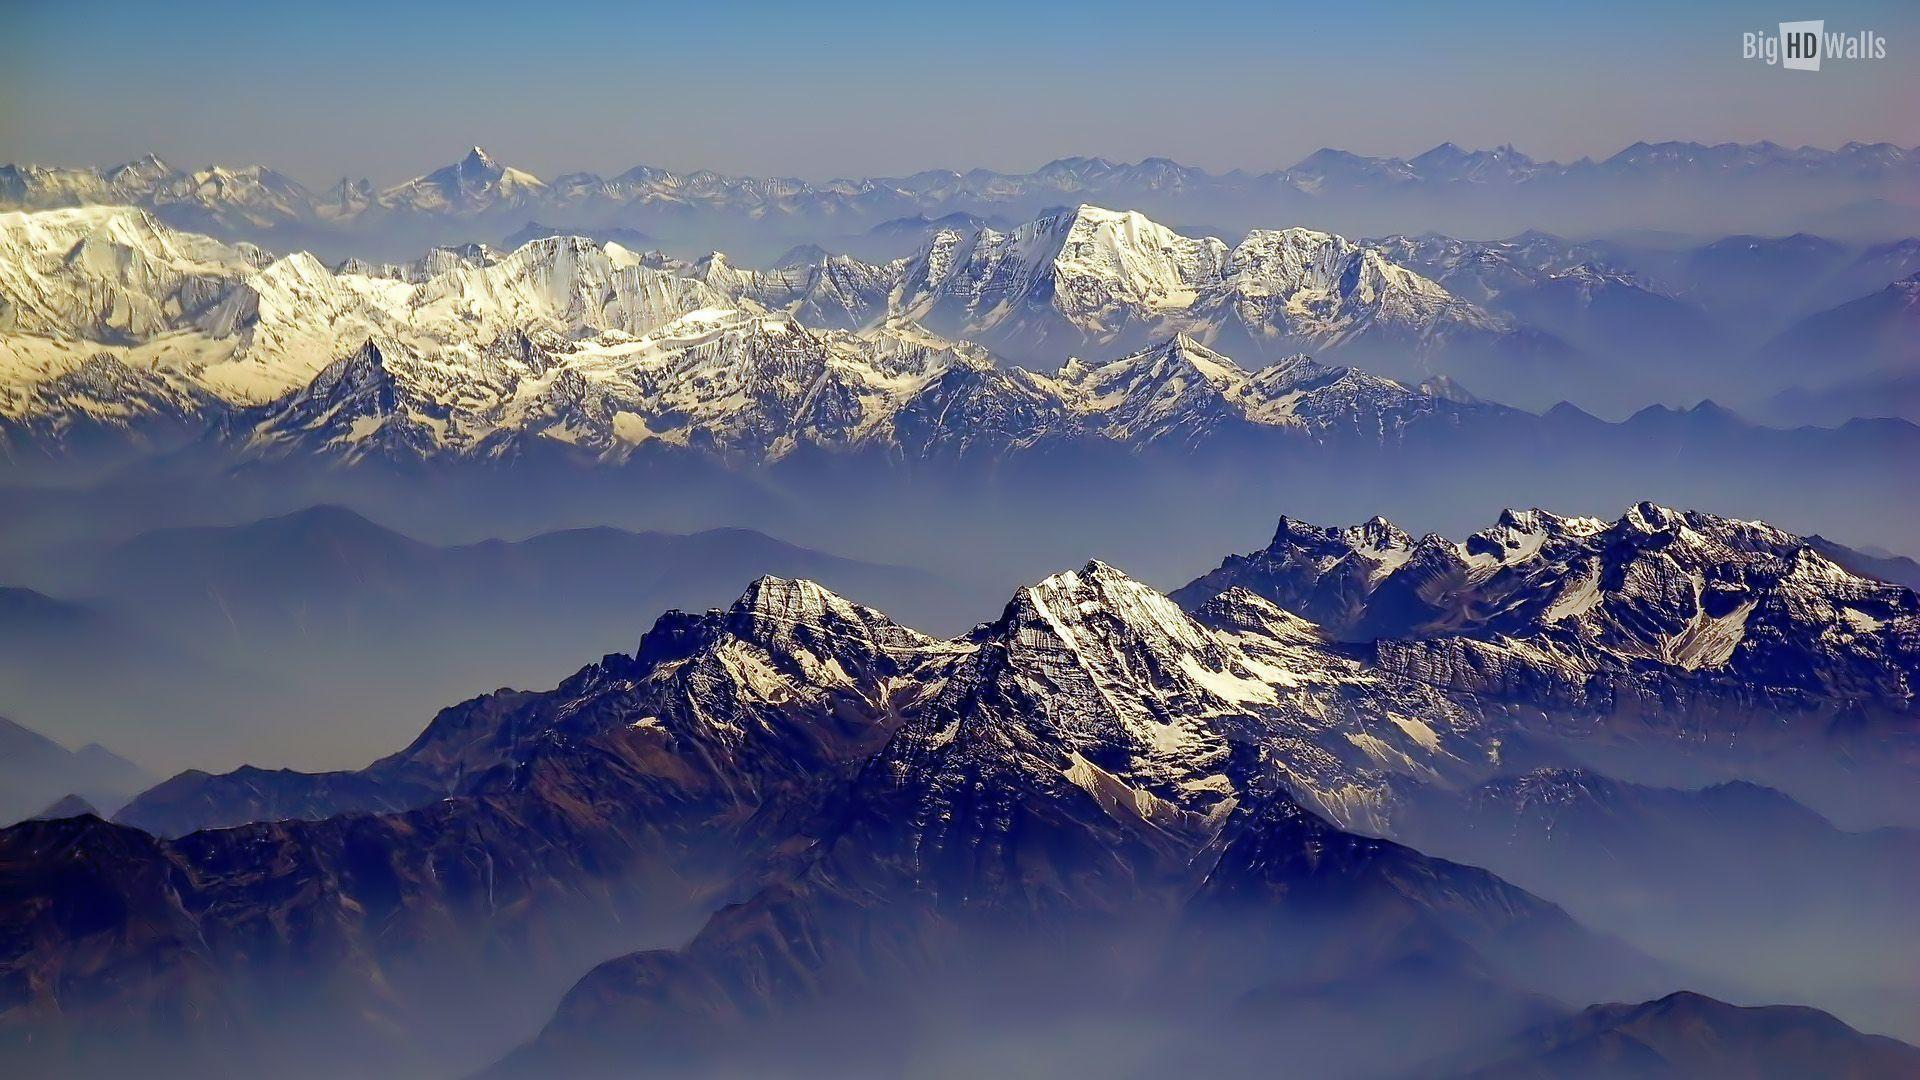 himalaya mountains hd wallpaper - photo #8